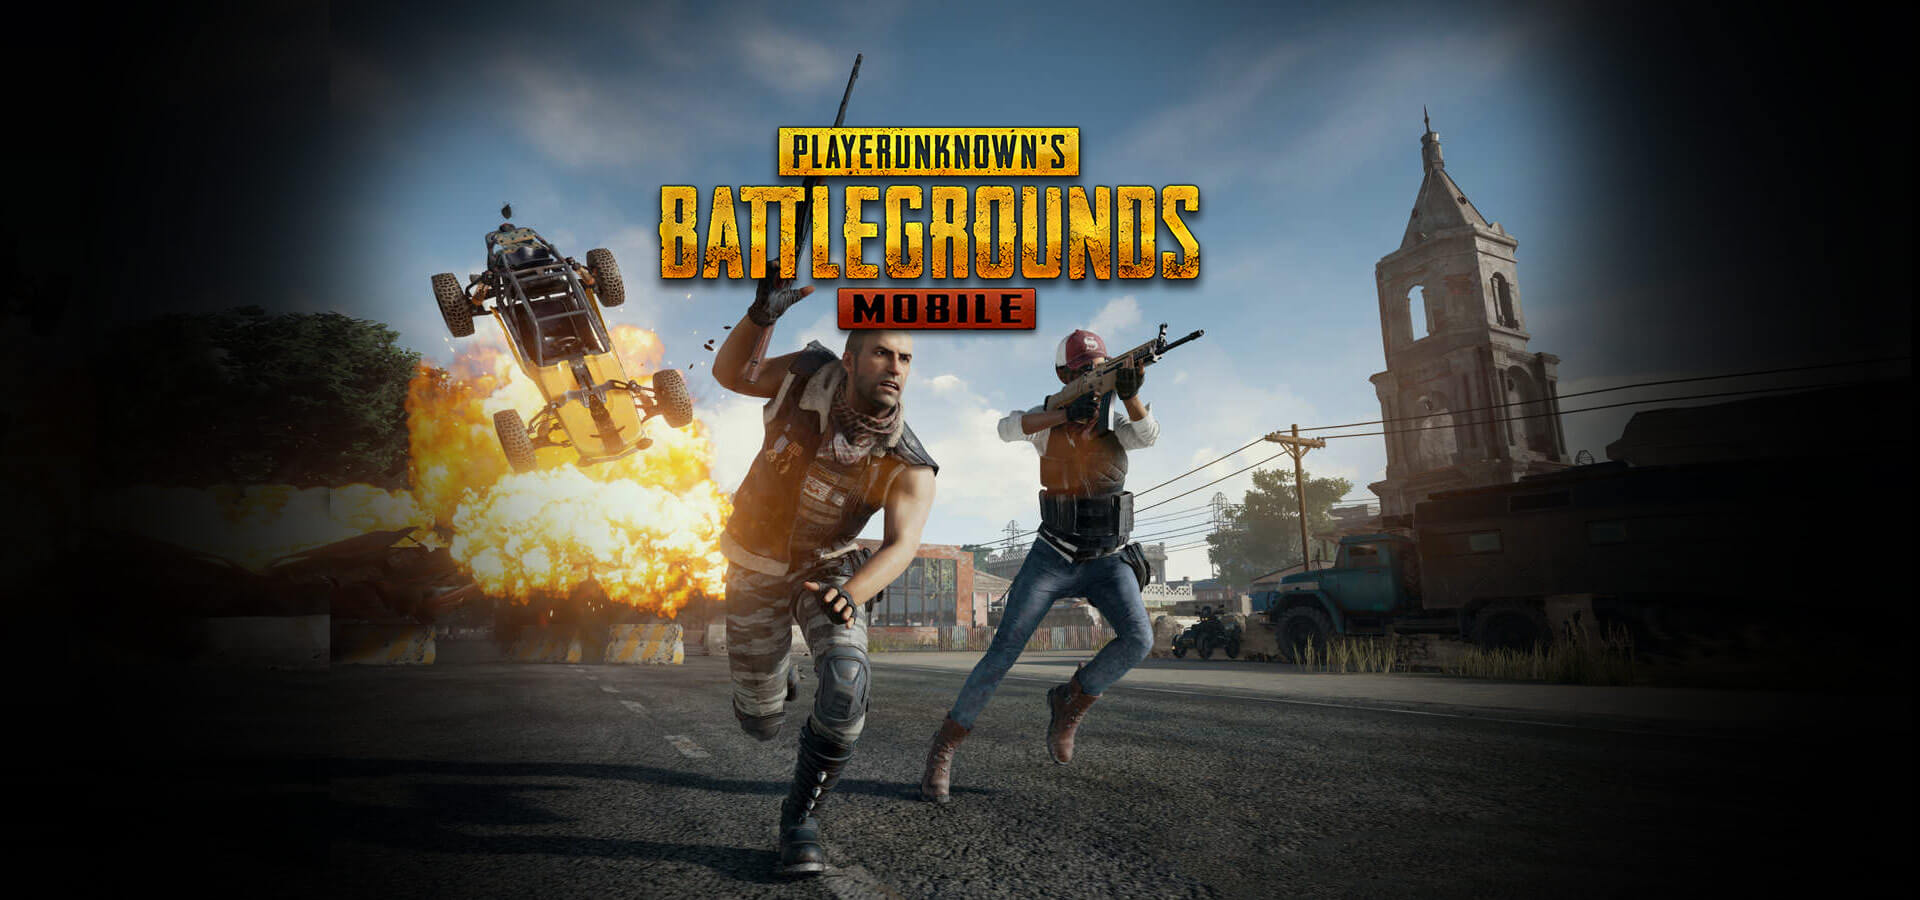 Pubg Mobile Wallpapers For Phone: PUBG Mobile International Geht Online